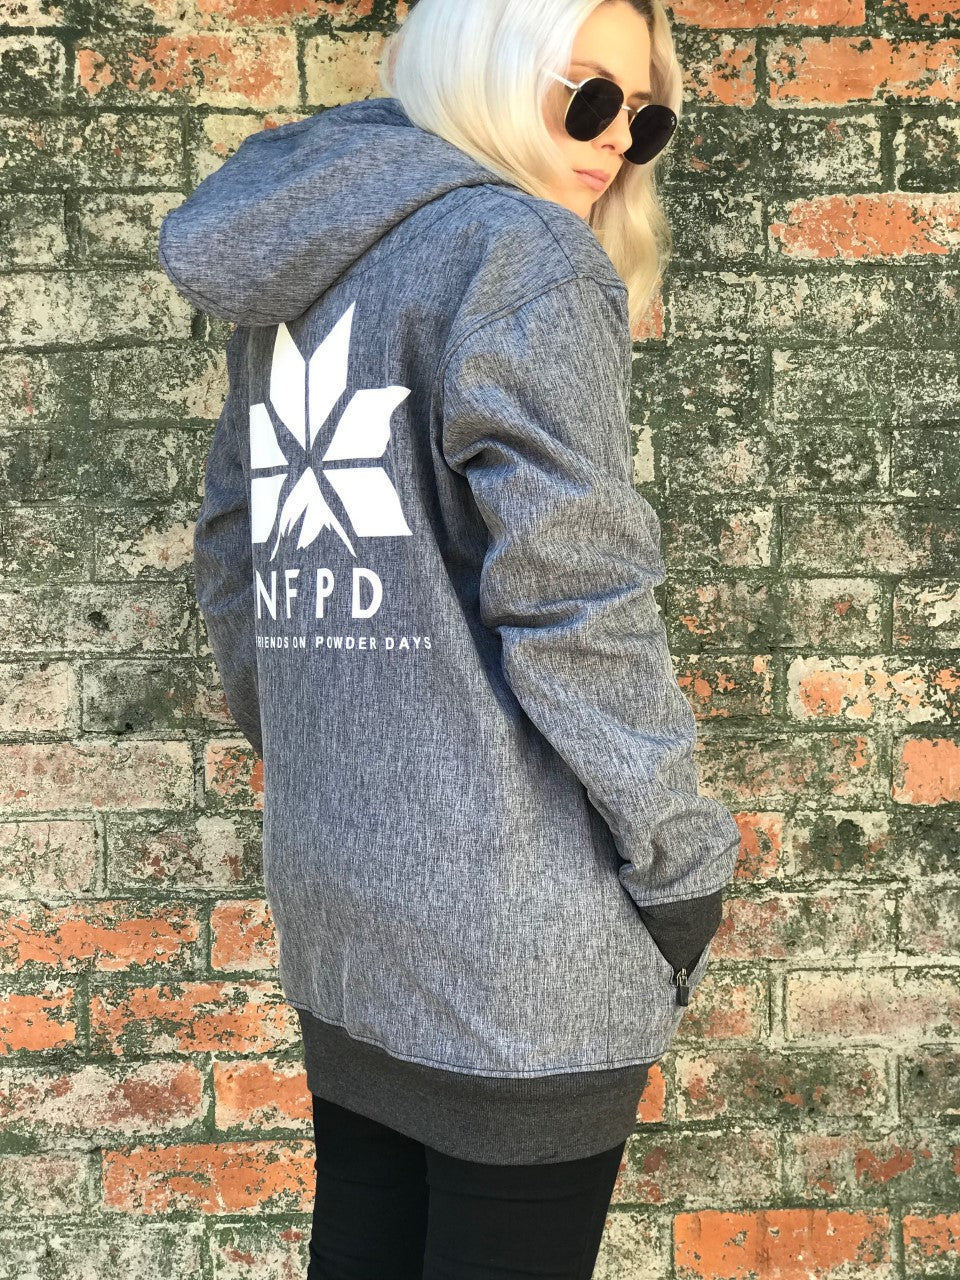 10K WATERPROOF Tall Grey Marle Softshell Hoodie - Unisex